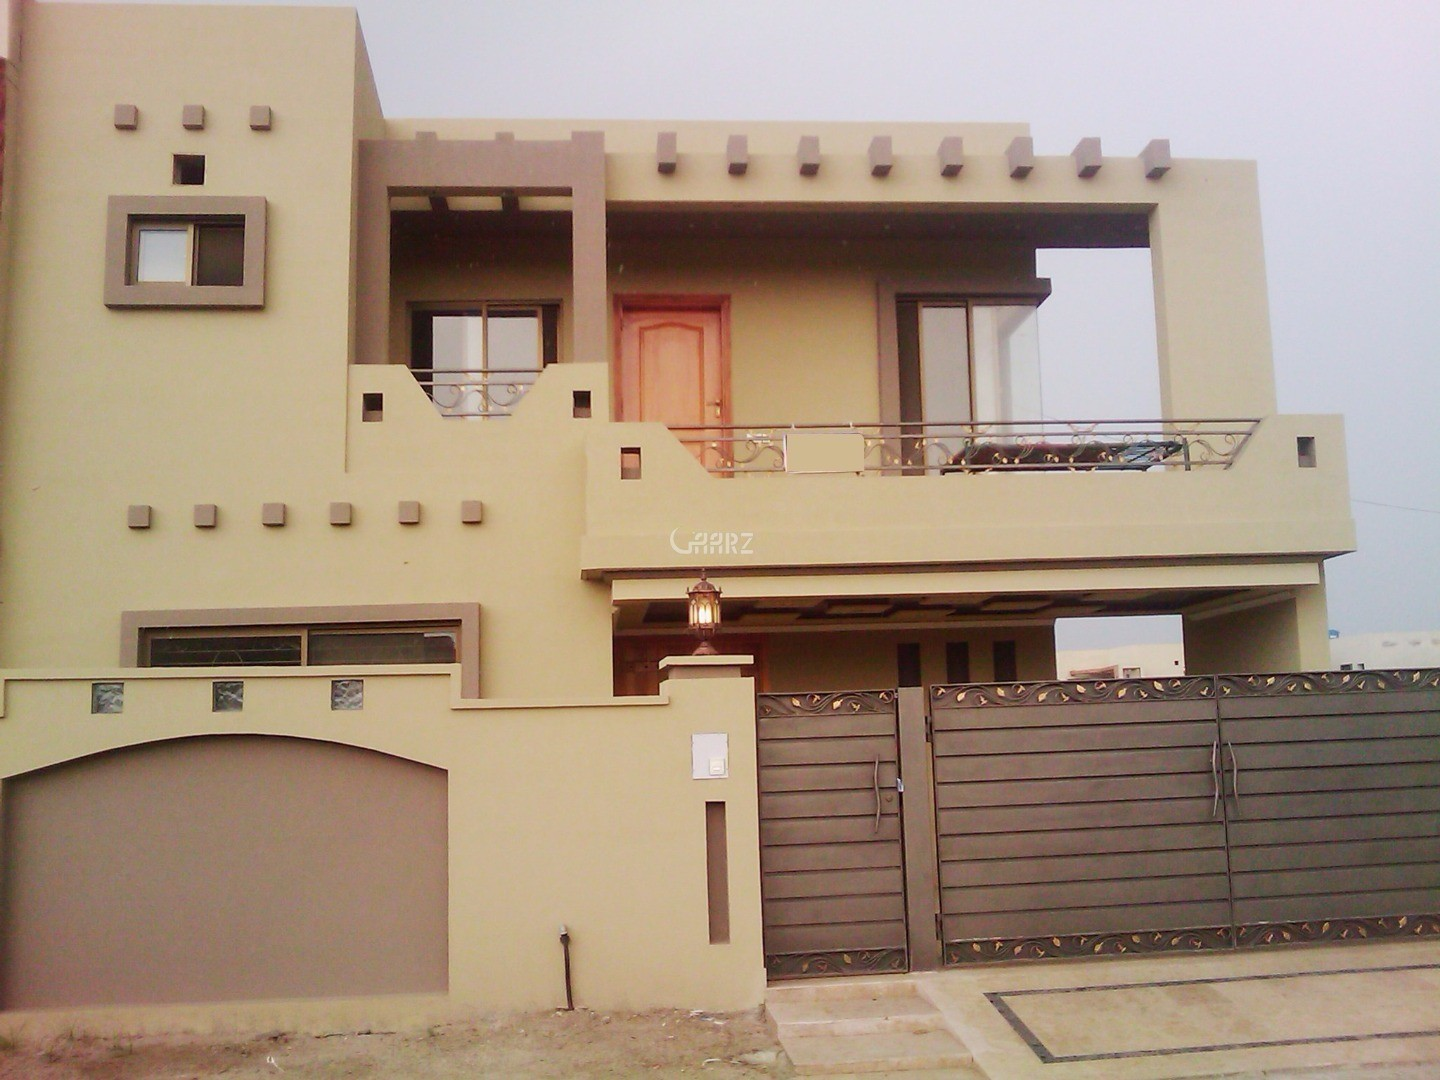 14 Marla House For Sale In Bahria Town, Karachi